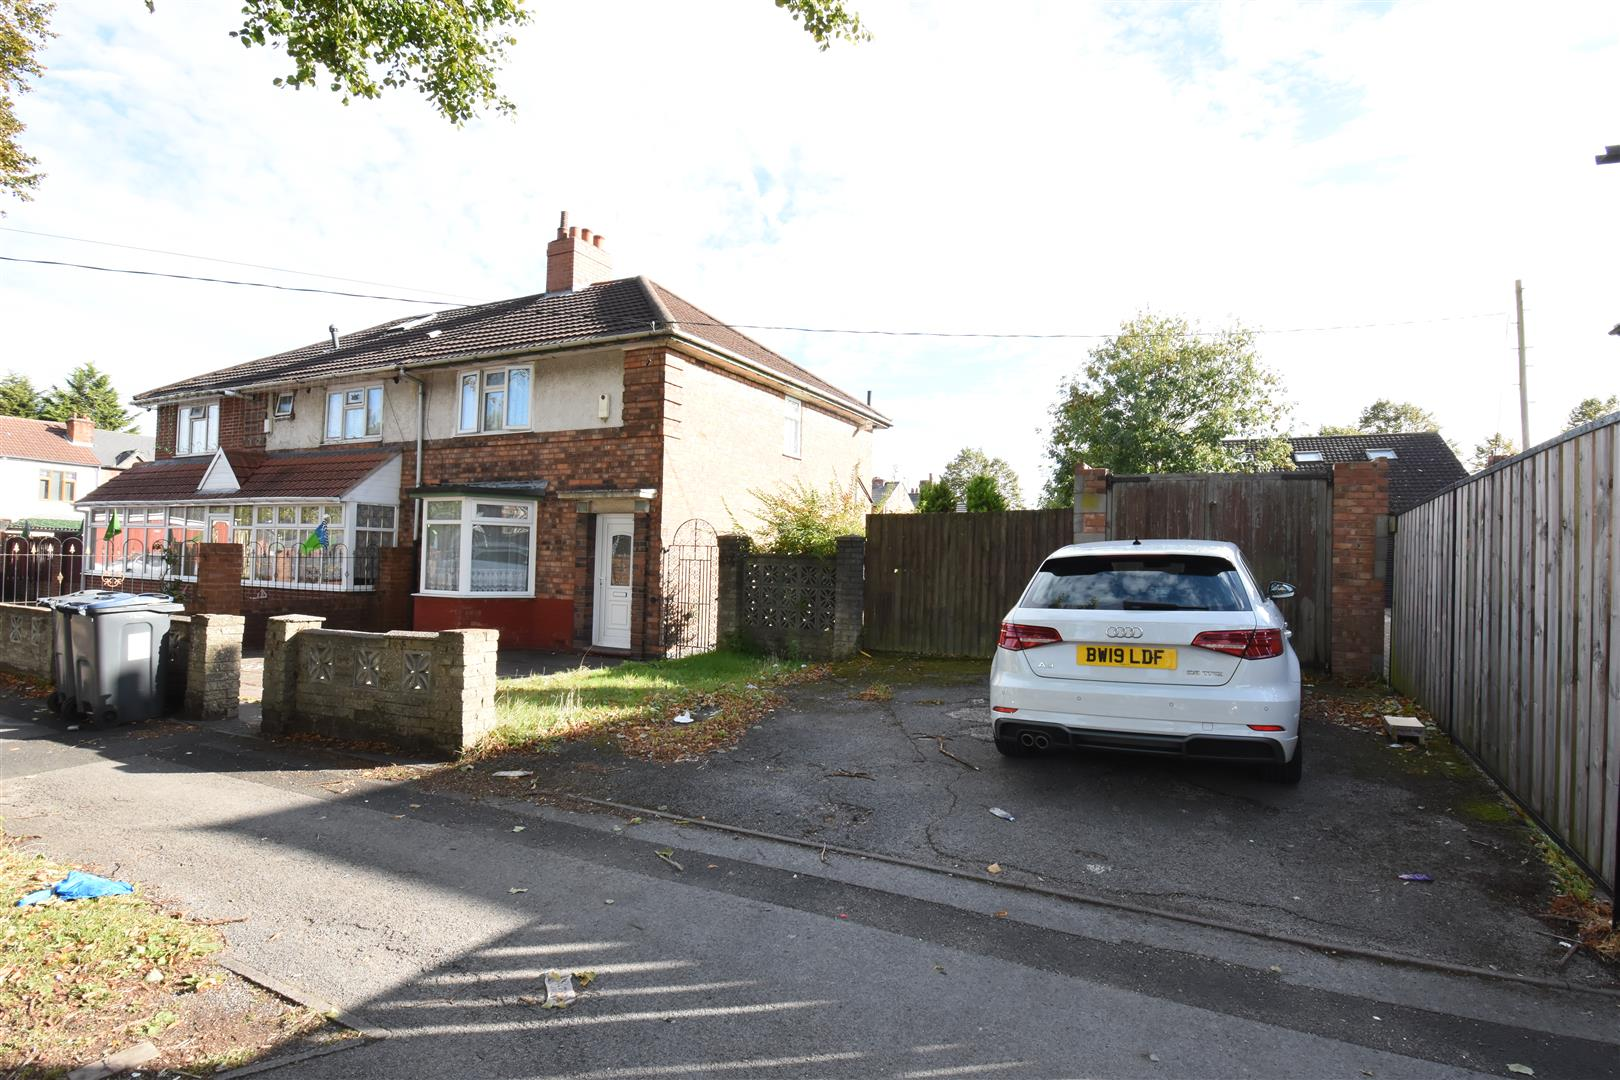 3 bed house for sale in Shaw Hill Road, Ward End, Birmingham, B8